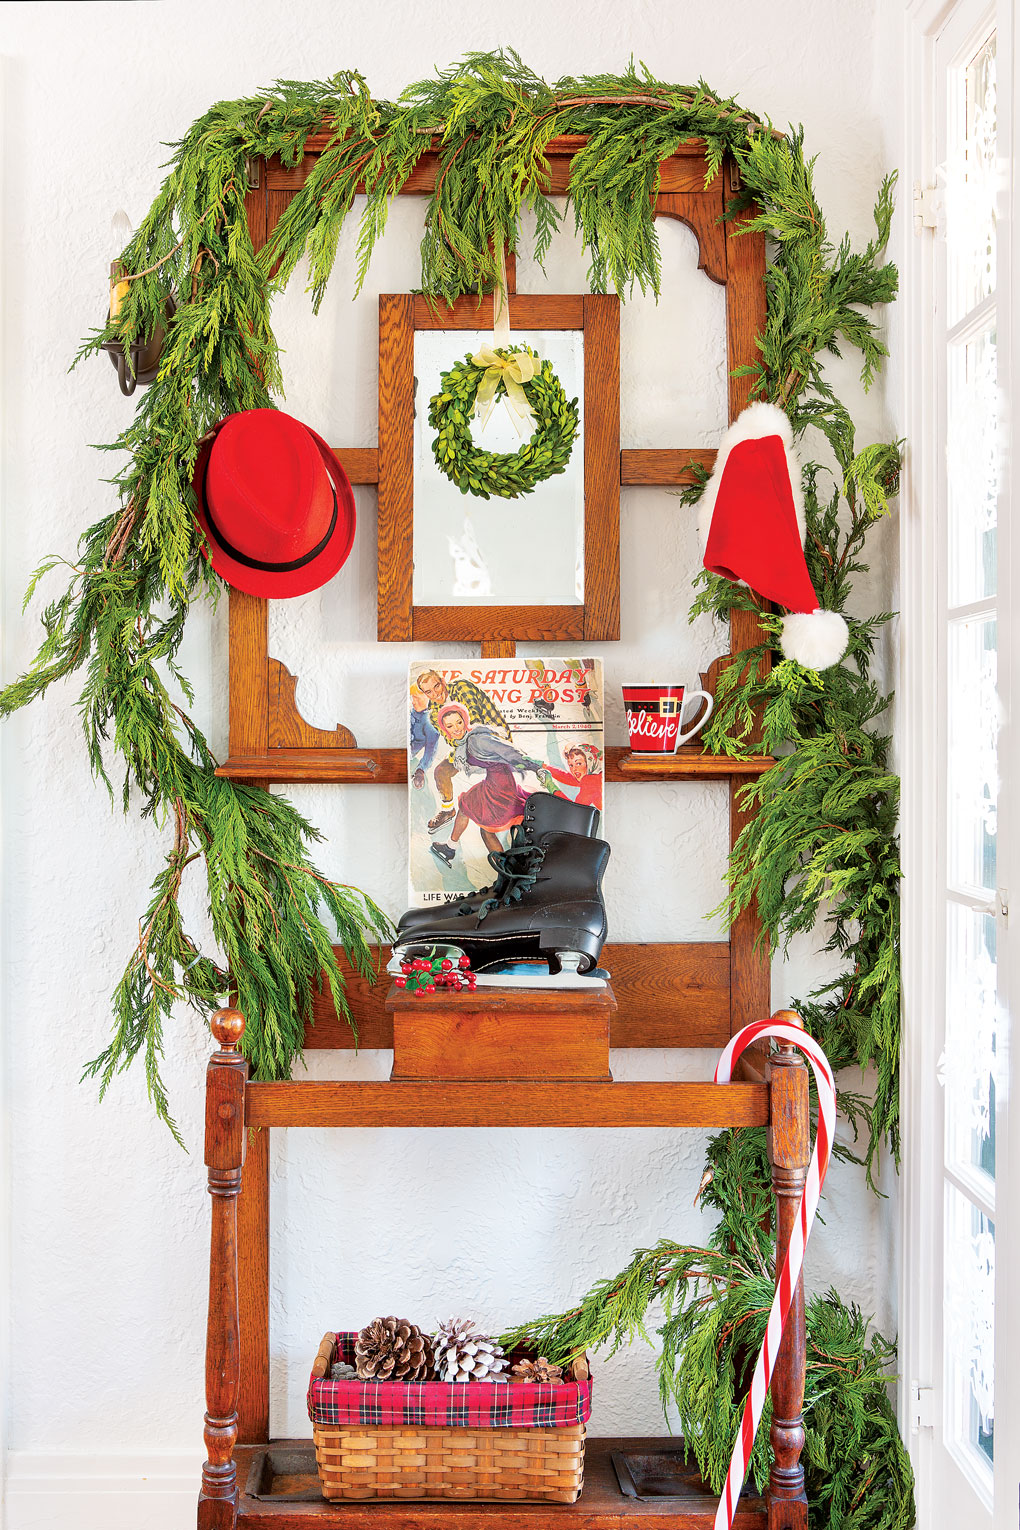 A wooden hall tree in the entryway of the home adorned with a cedar garland with pops of red and a pair of antique black ice skates.